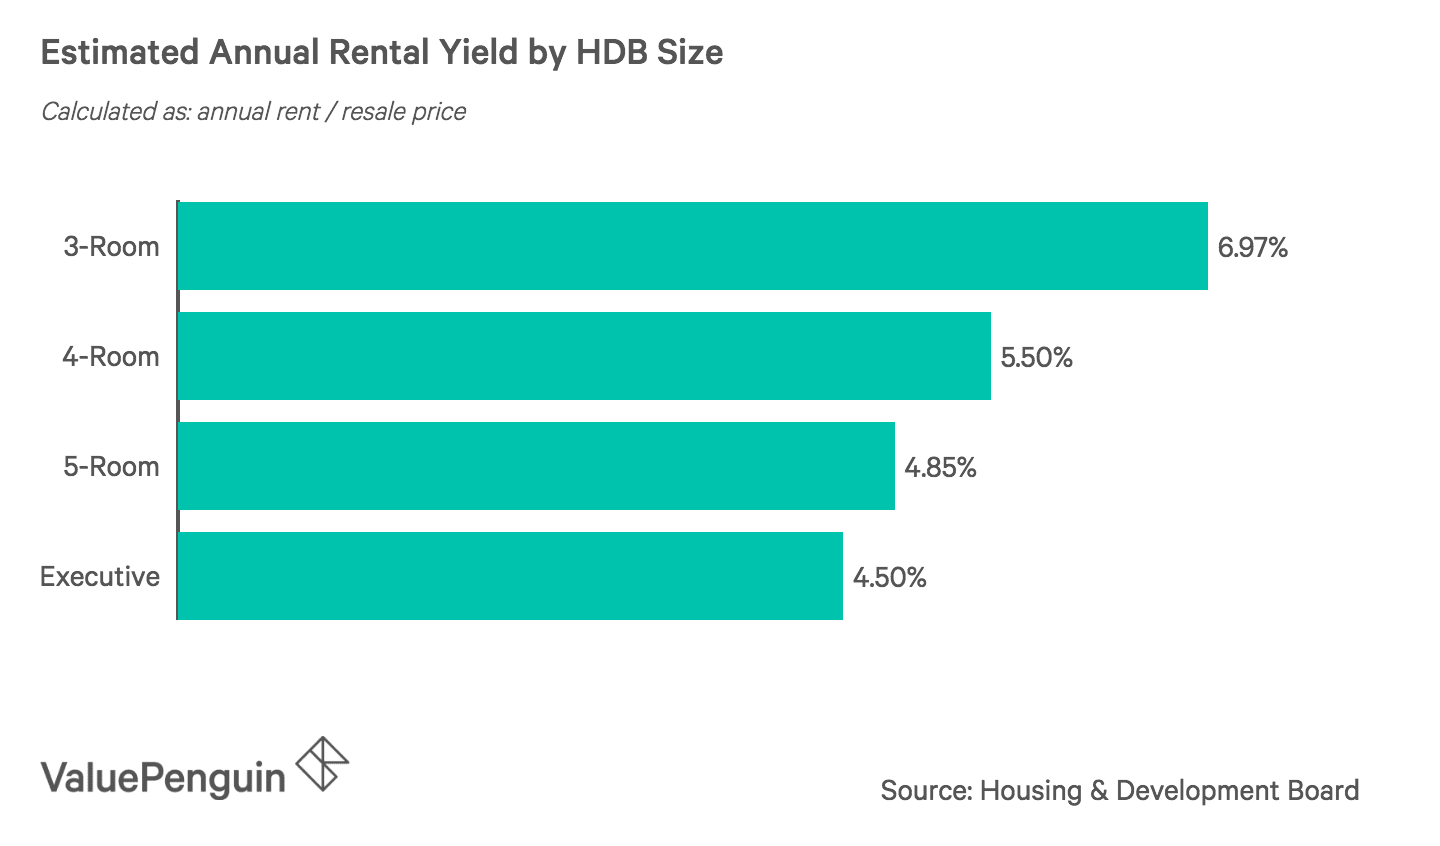 Estimated Annual Rental Yield by HDB Size